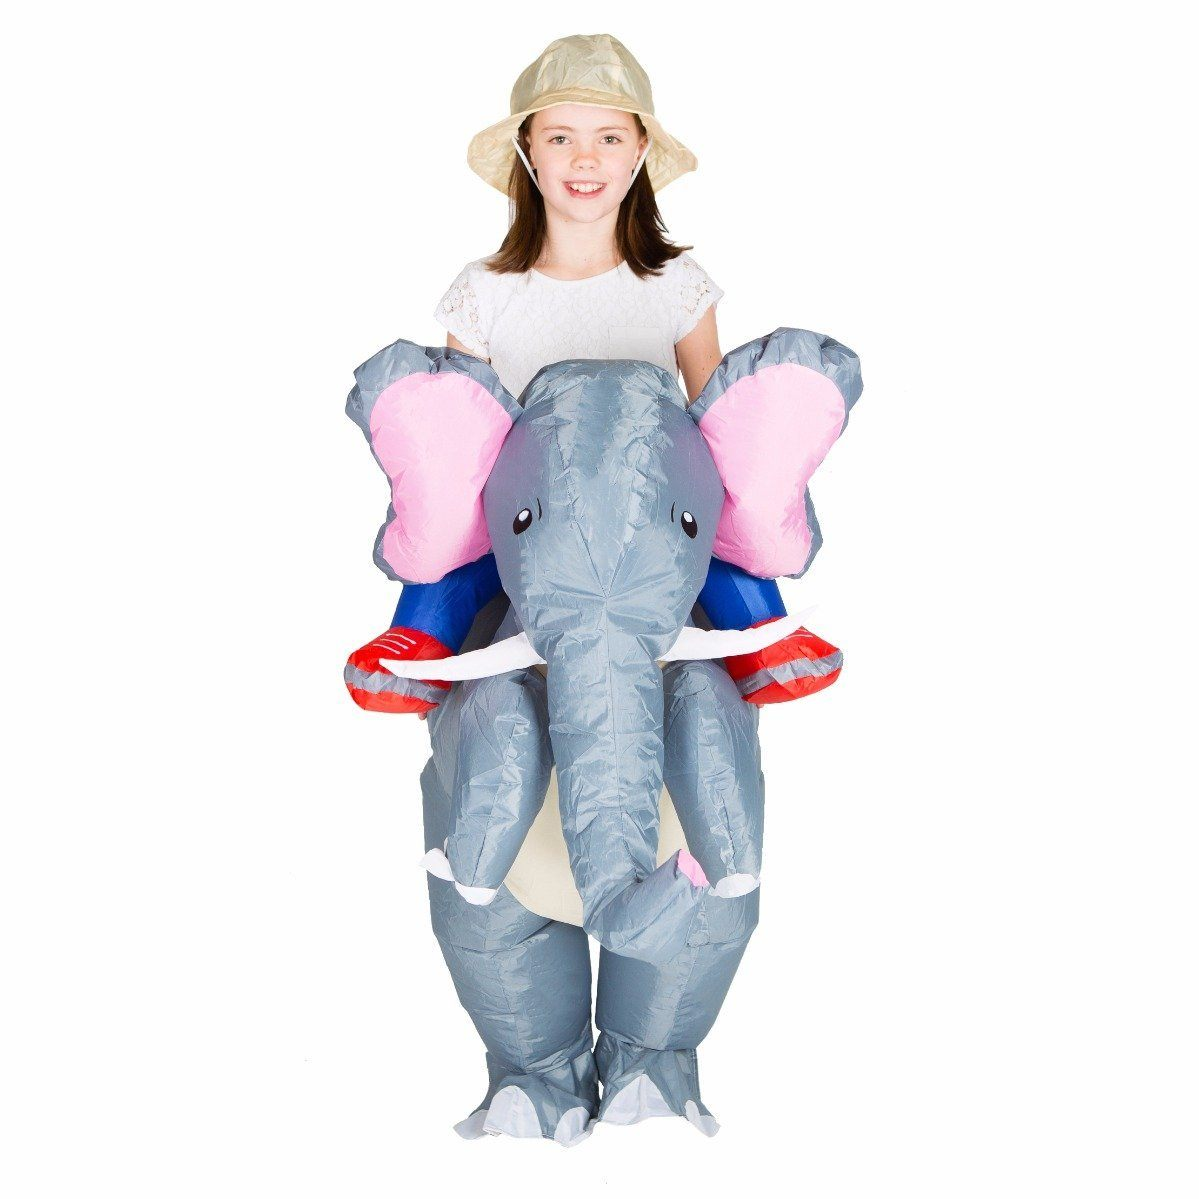 Fancy Dress - Kids Inflatable Elephant Costume